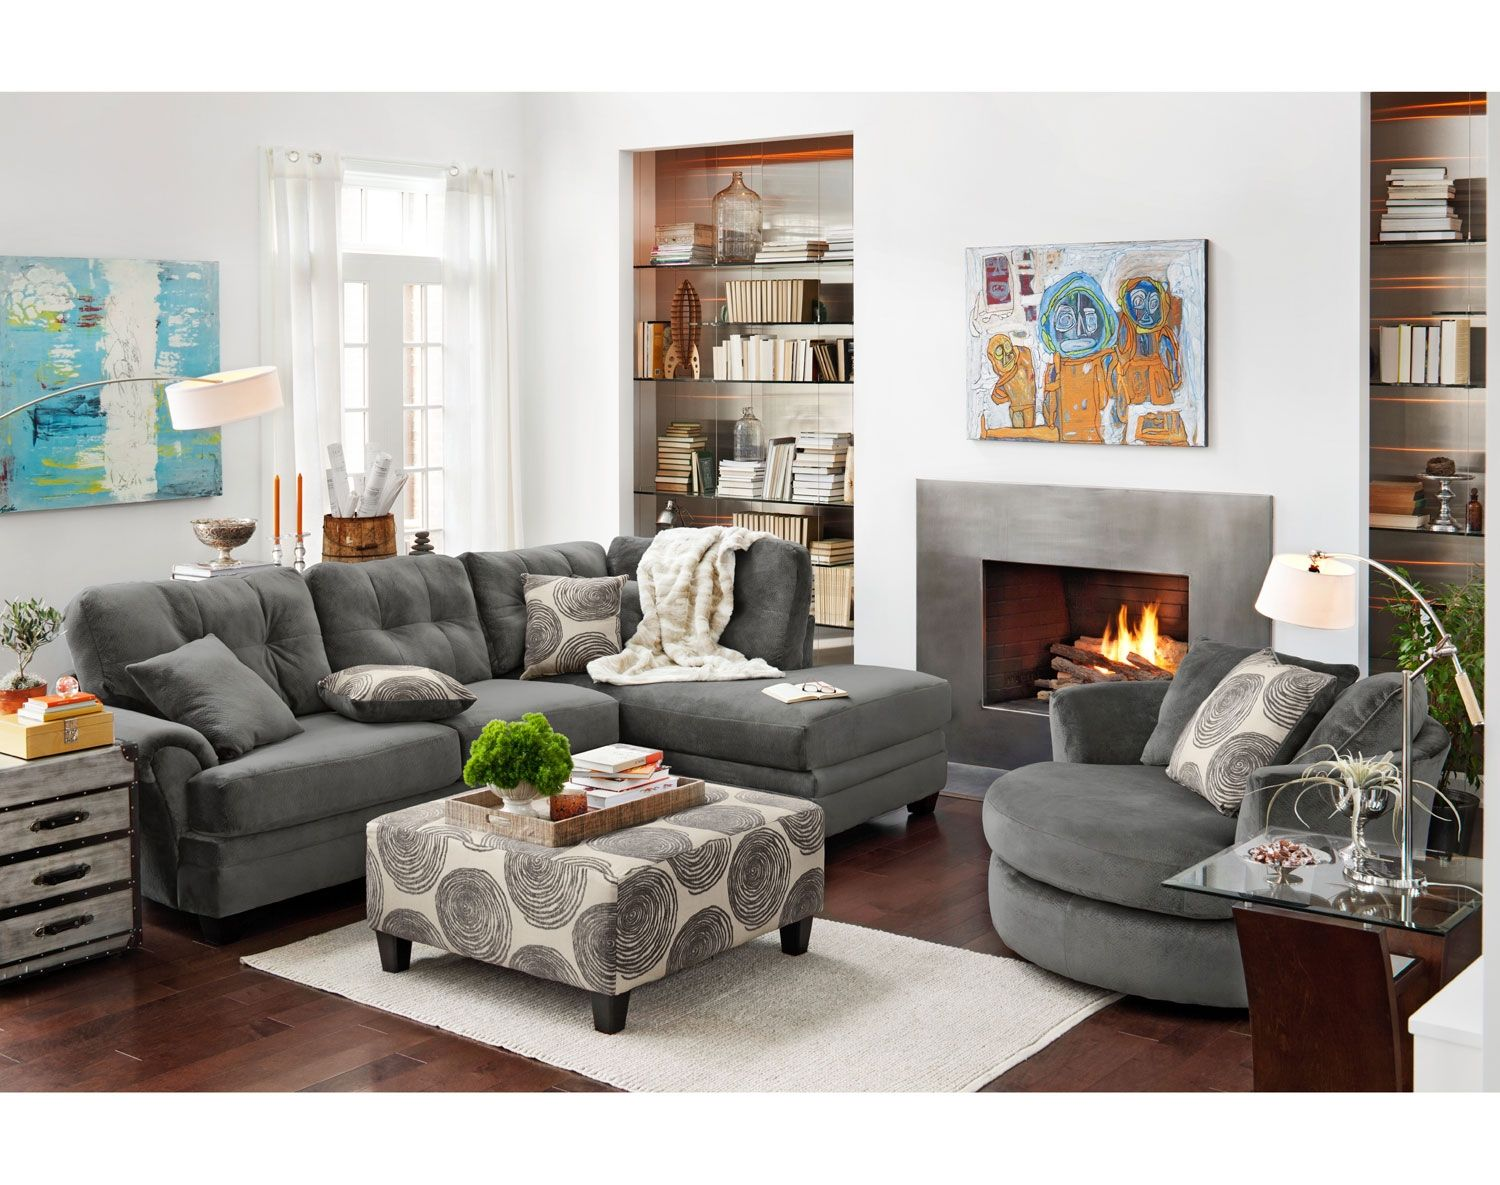 Sensational The Cordelle Sectional Collection Gray American Machost Co Dining Chair Design Ideas Machostcouk